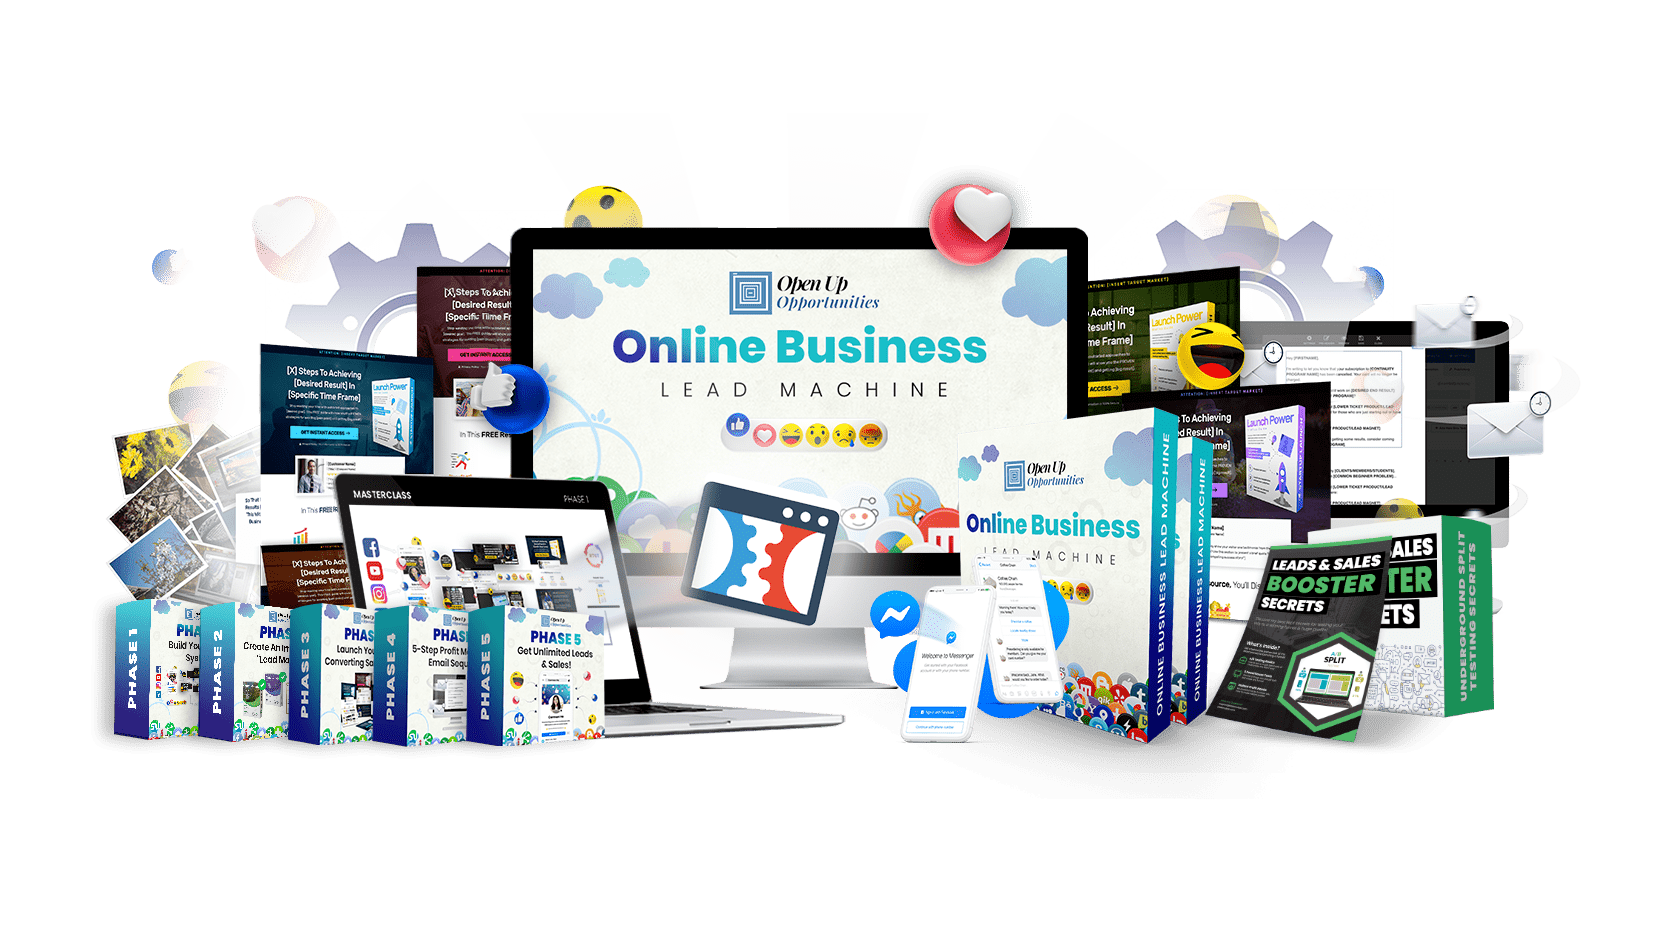 Online Business Lead Machine - openup-opportunities.com